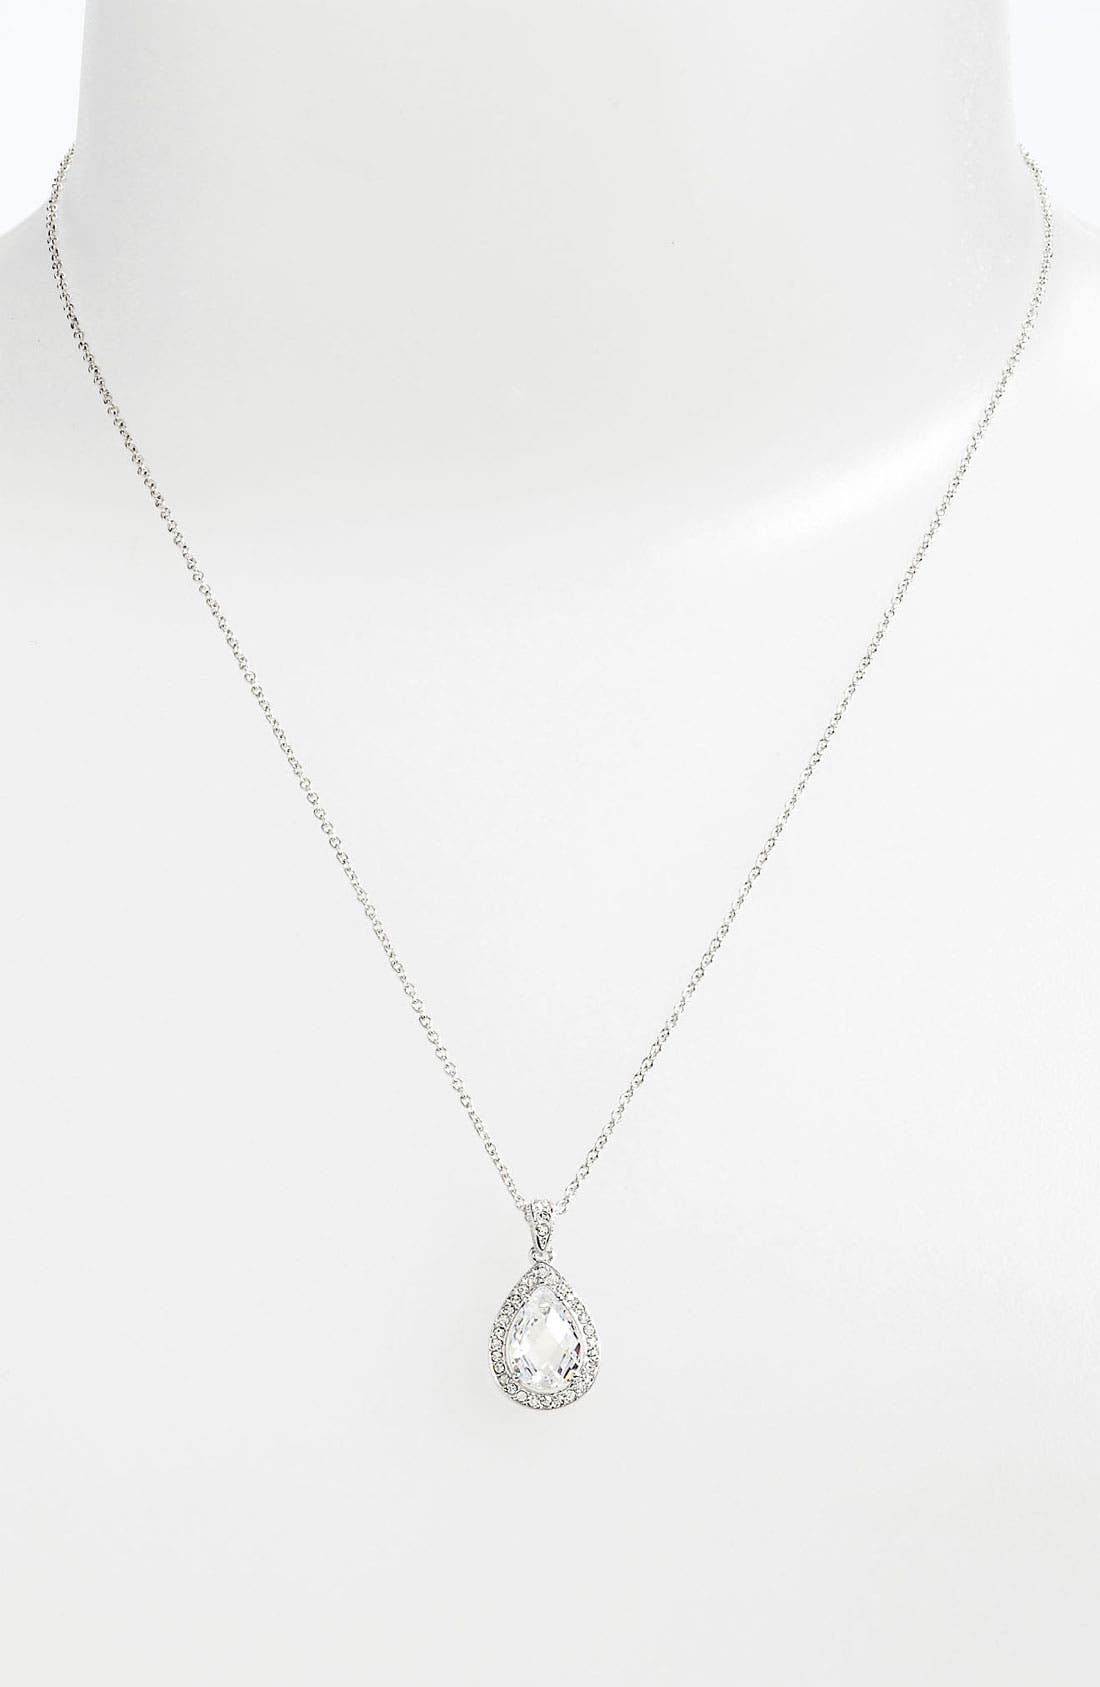 Alternate Image 1 Selected - Nadri Teardrop Pendant Necklace